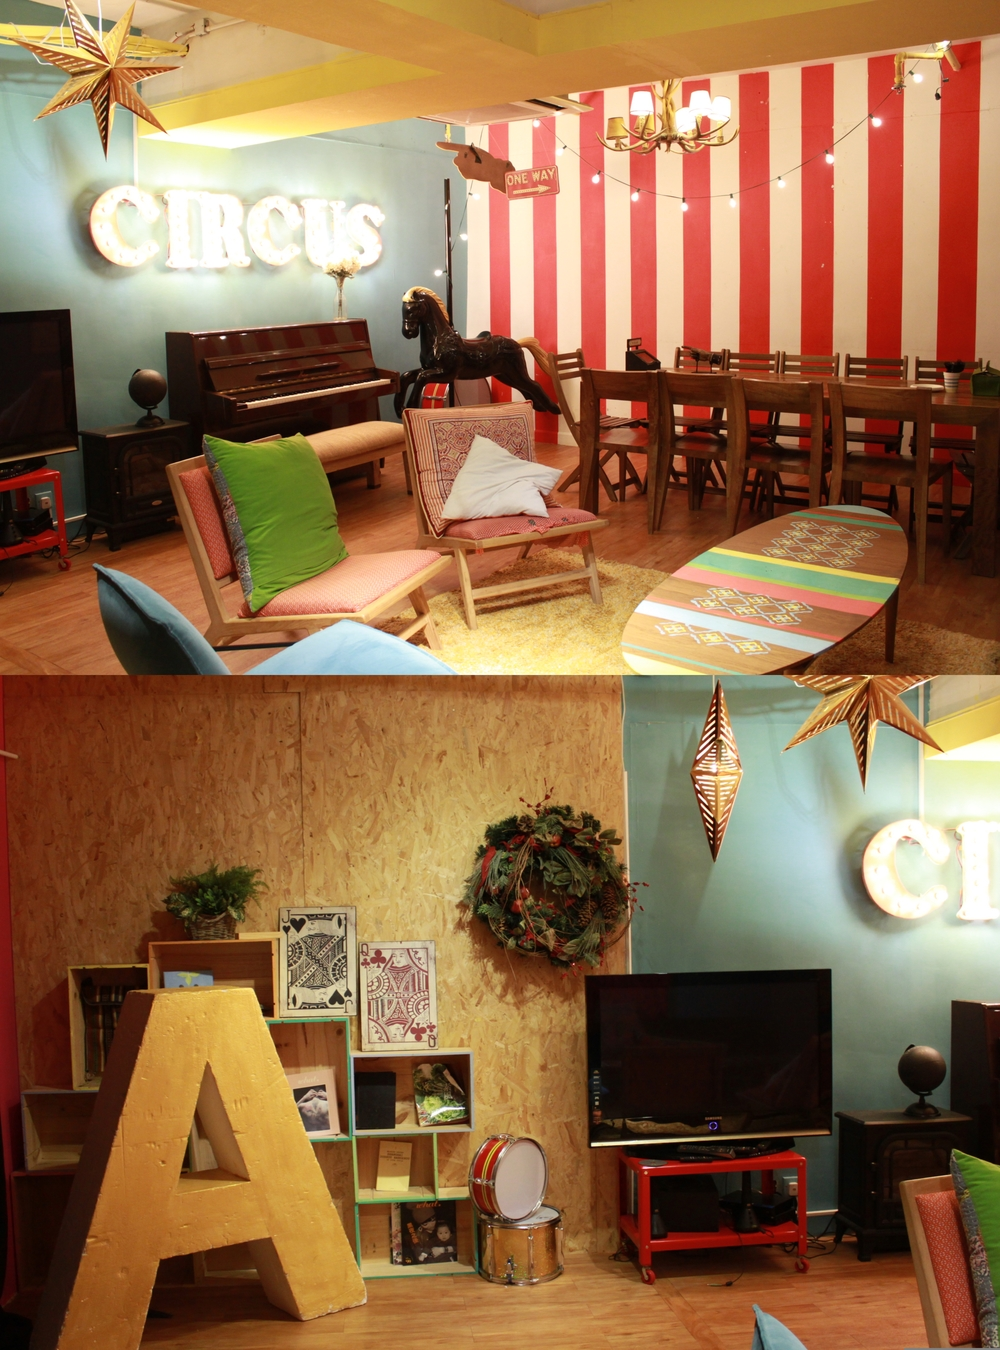 Venue: Hide n' Seek (Circus Room)